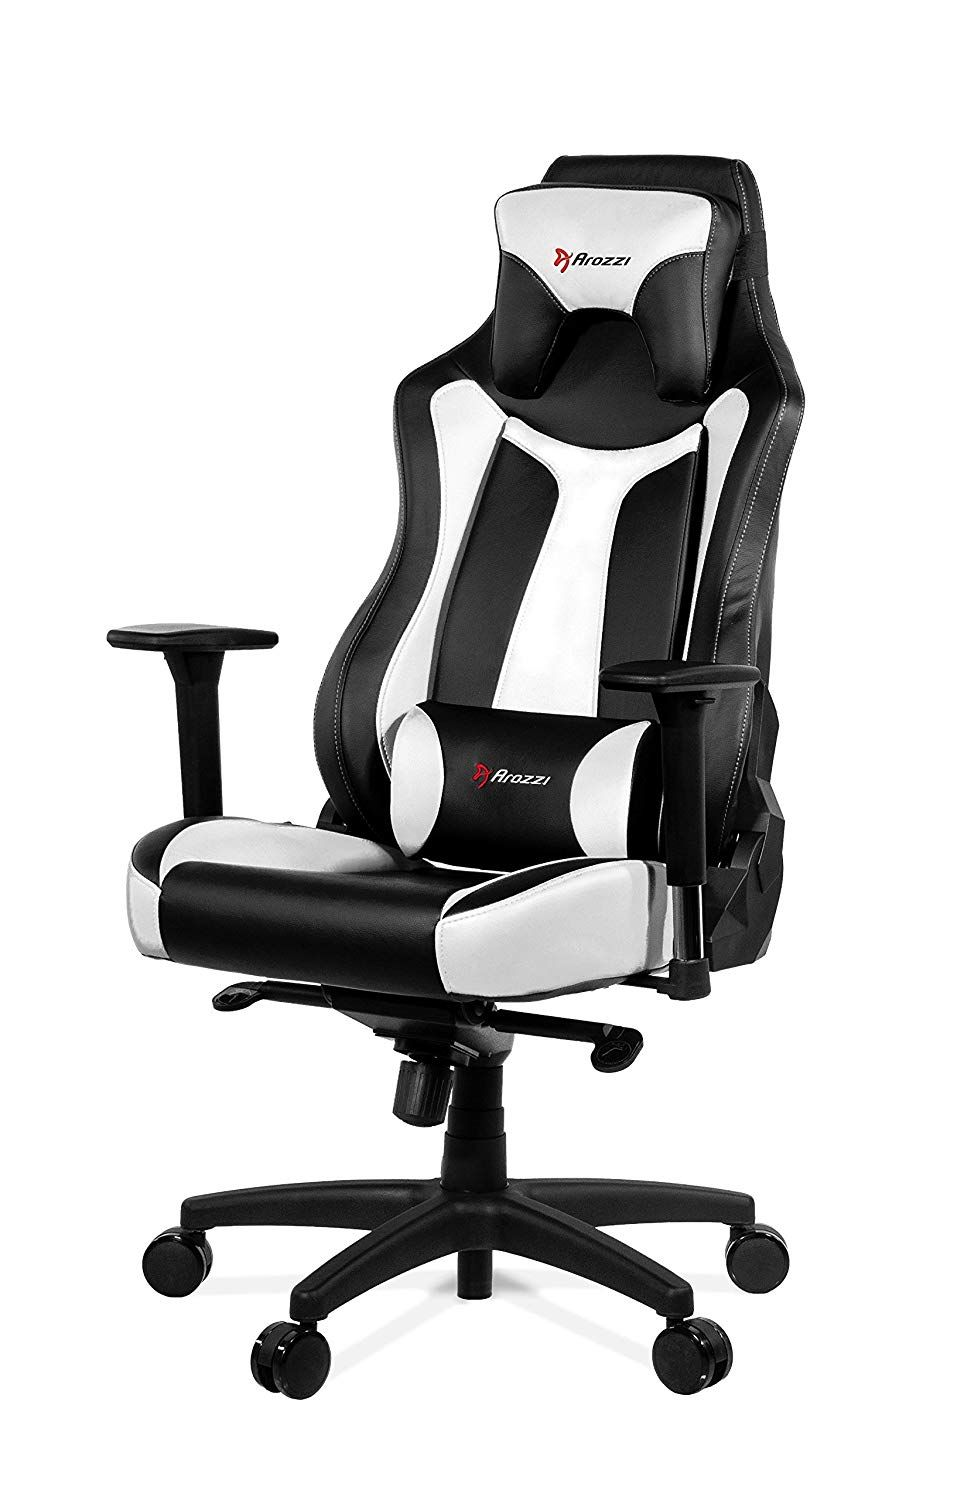 Best Desk Chair Gaming Reddit In 2020 Races Style Gaming Chair